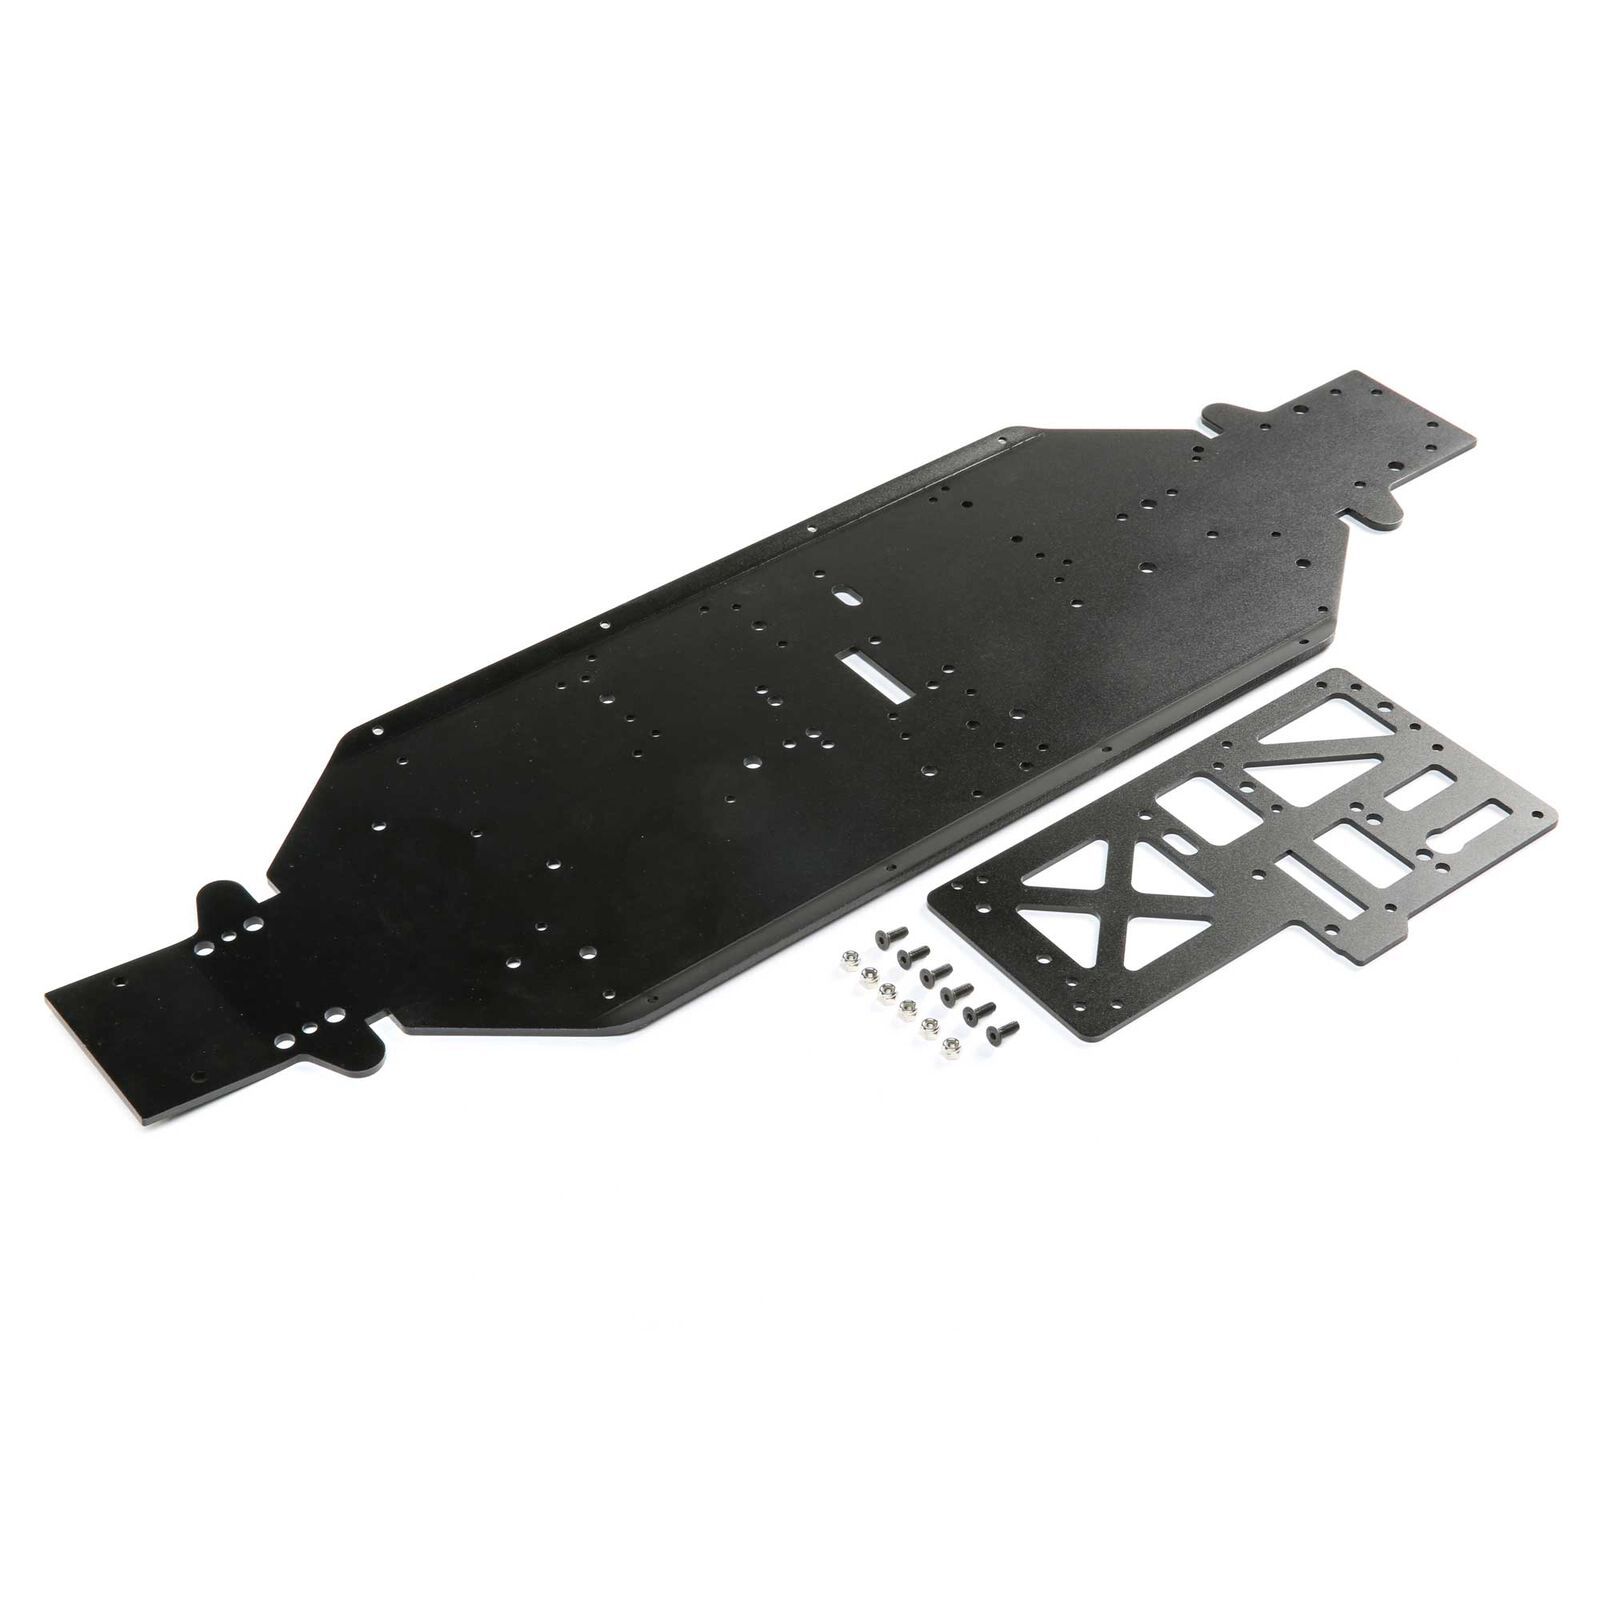 Chassis with Brace, 4mm Black: DBXL-E 2.0